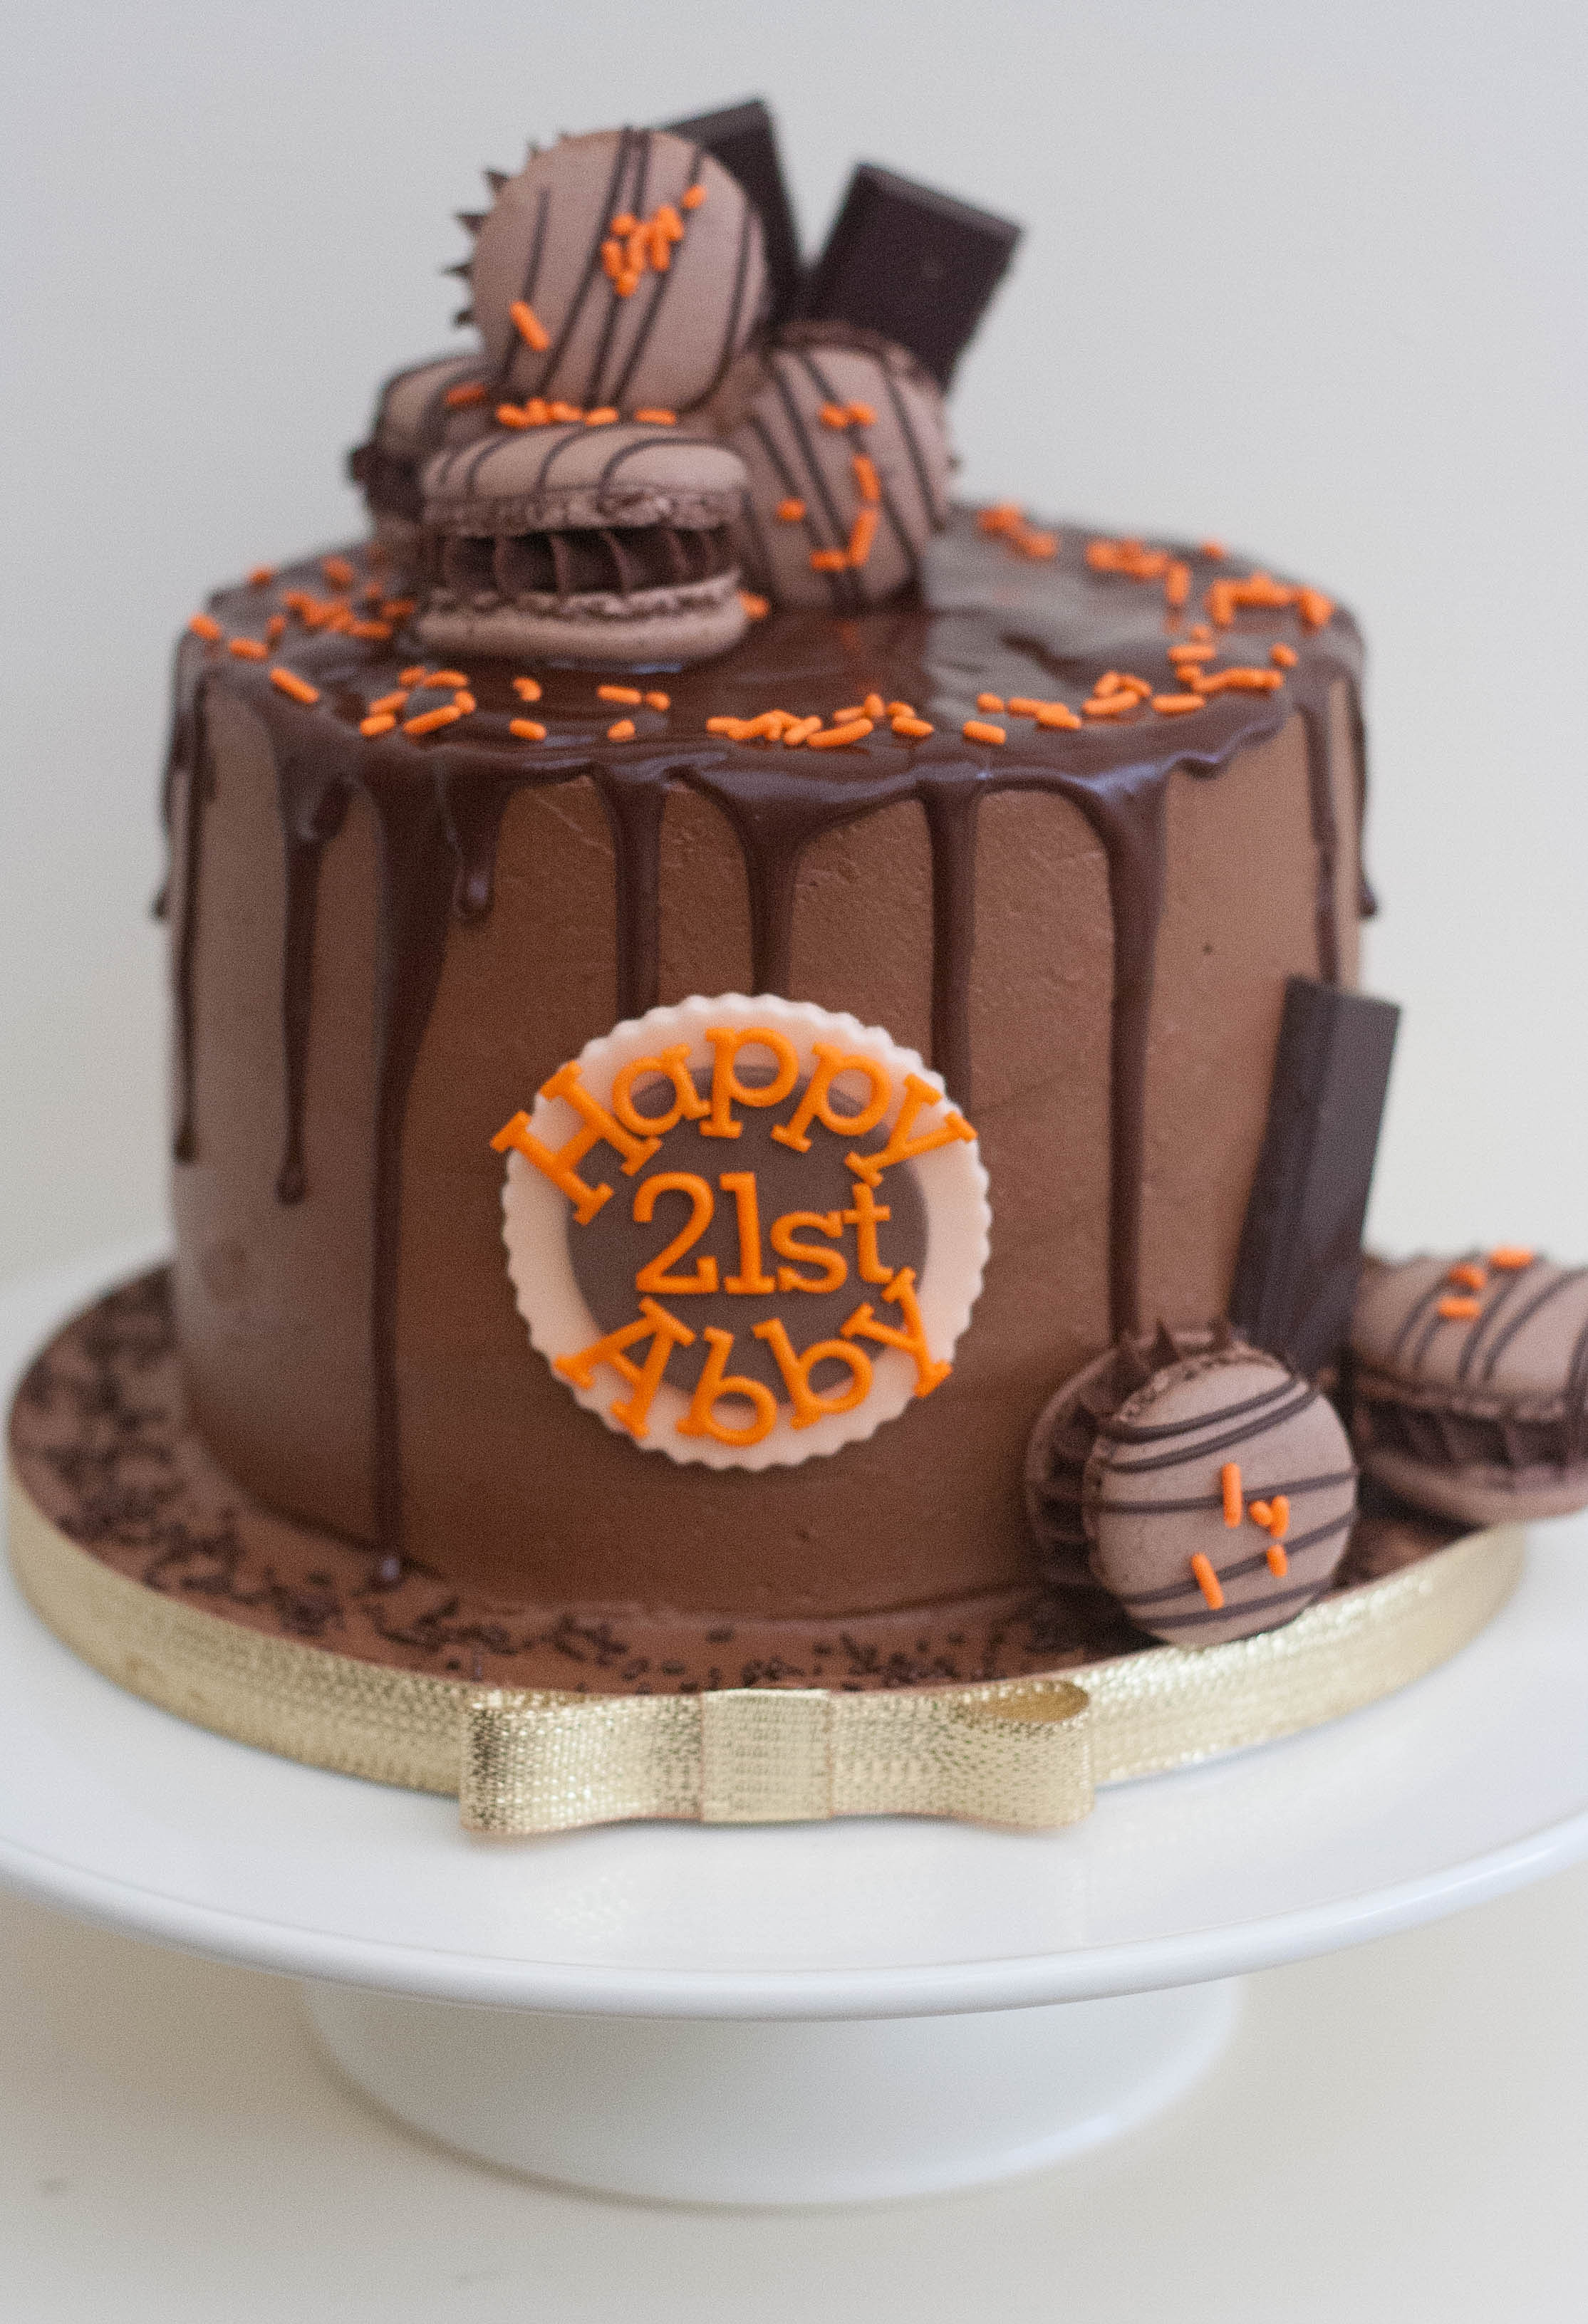 Chocolate Cake For Nd Birthday